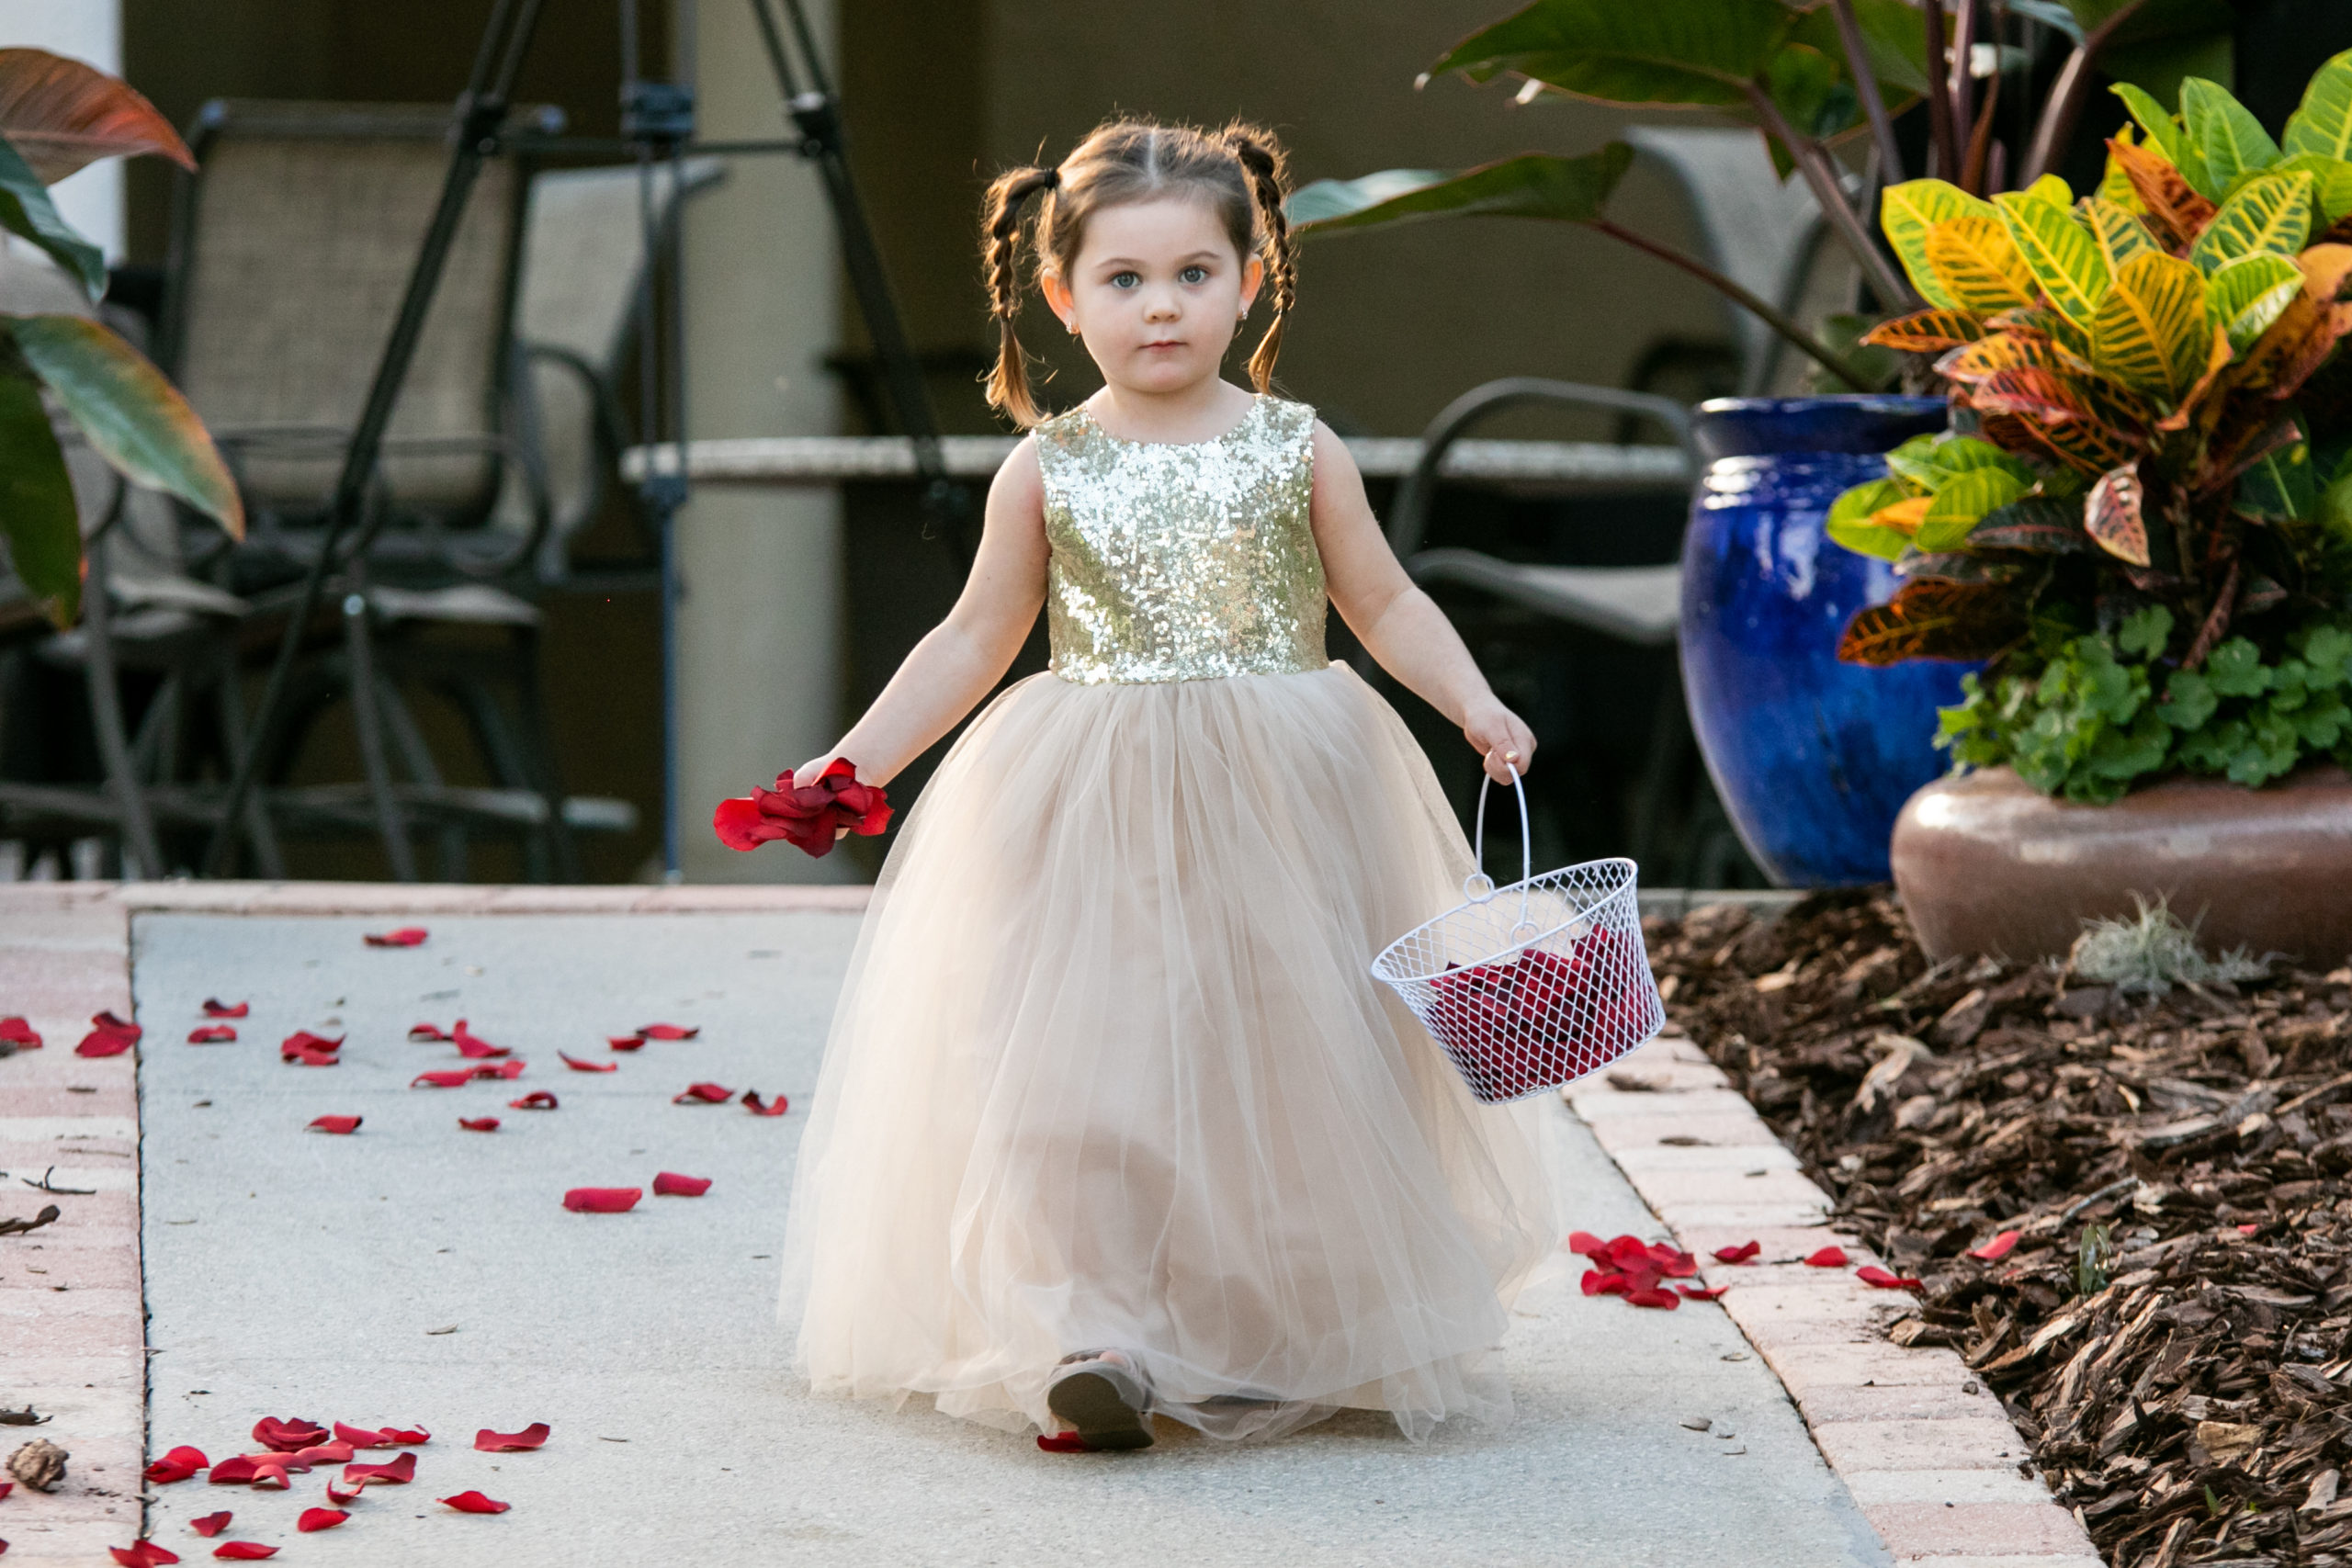 second flower girl dropping rose petals